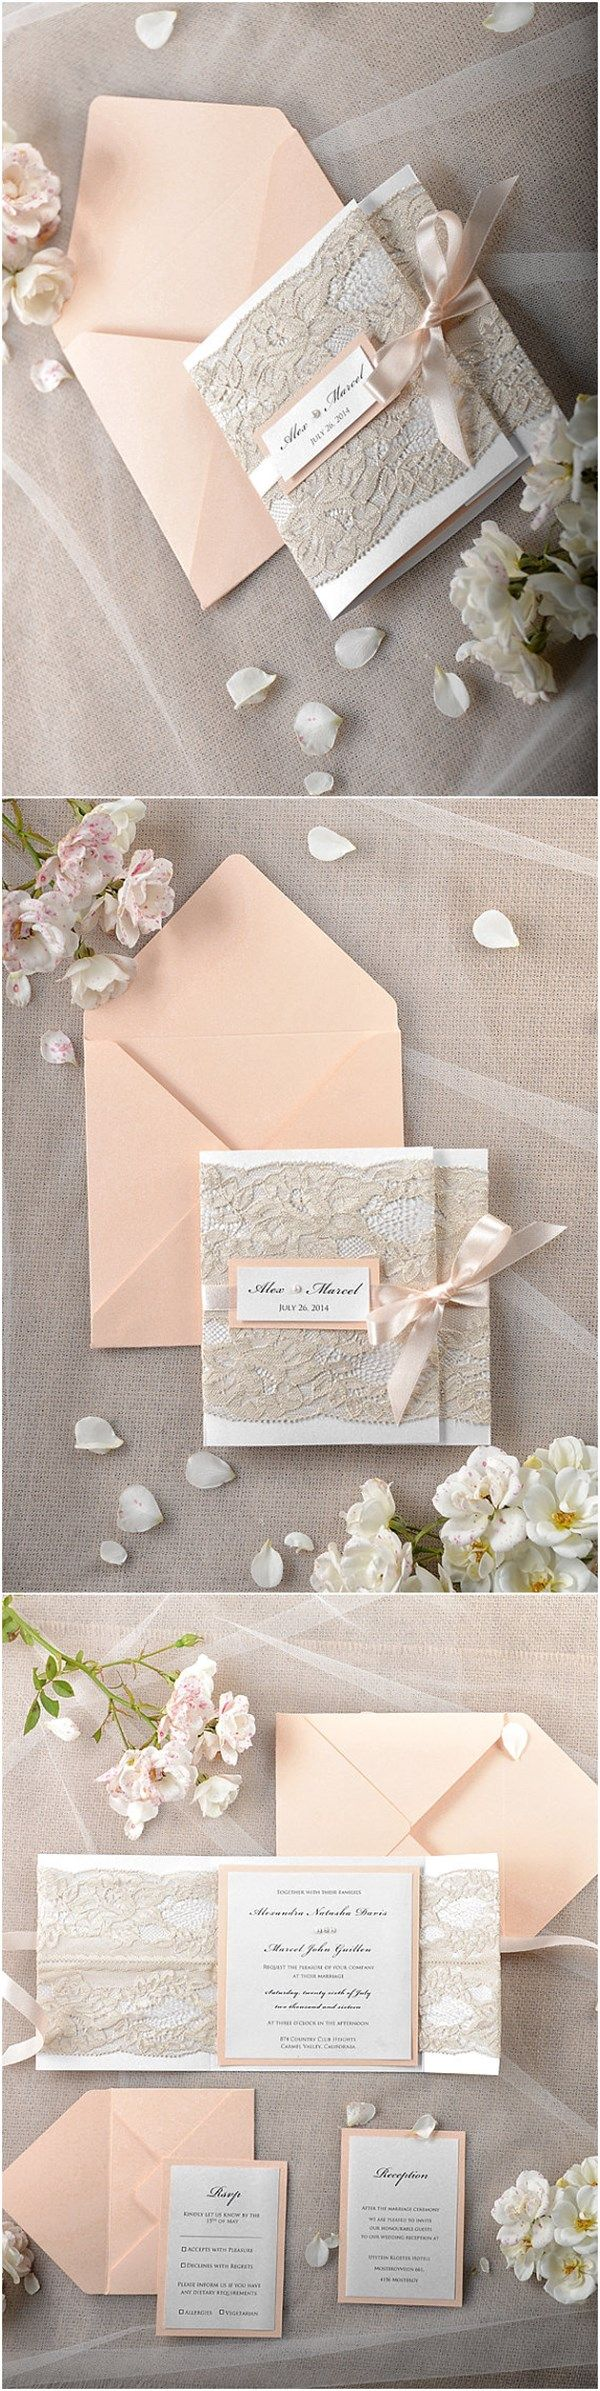 Peach Vintage Lace Coral Wedding Invitations